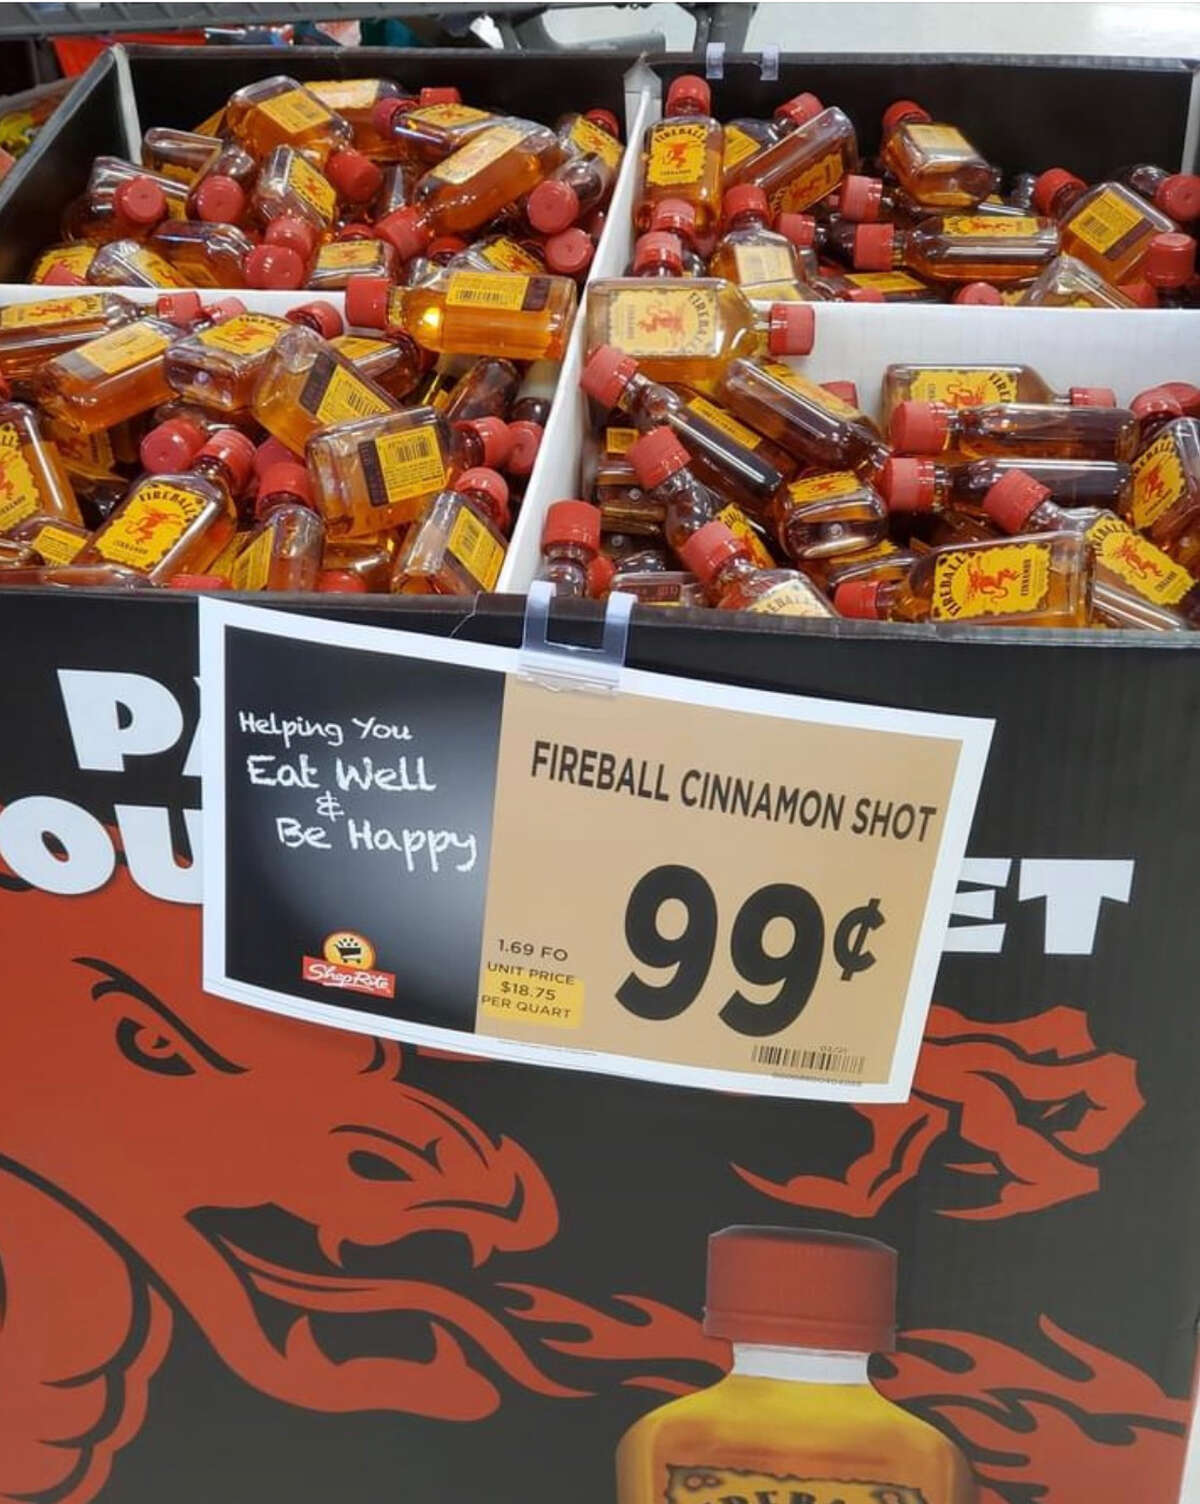 A display in a local supermarket of Fireball Cinnamon, a lower-alcohol, malt-liquor version of the popular Fireball Cinnamon Whisky. The latter is available only in liquor stores. (Provided photo.)